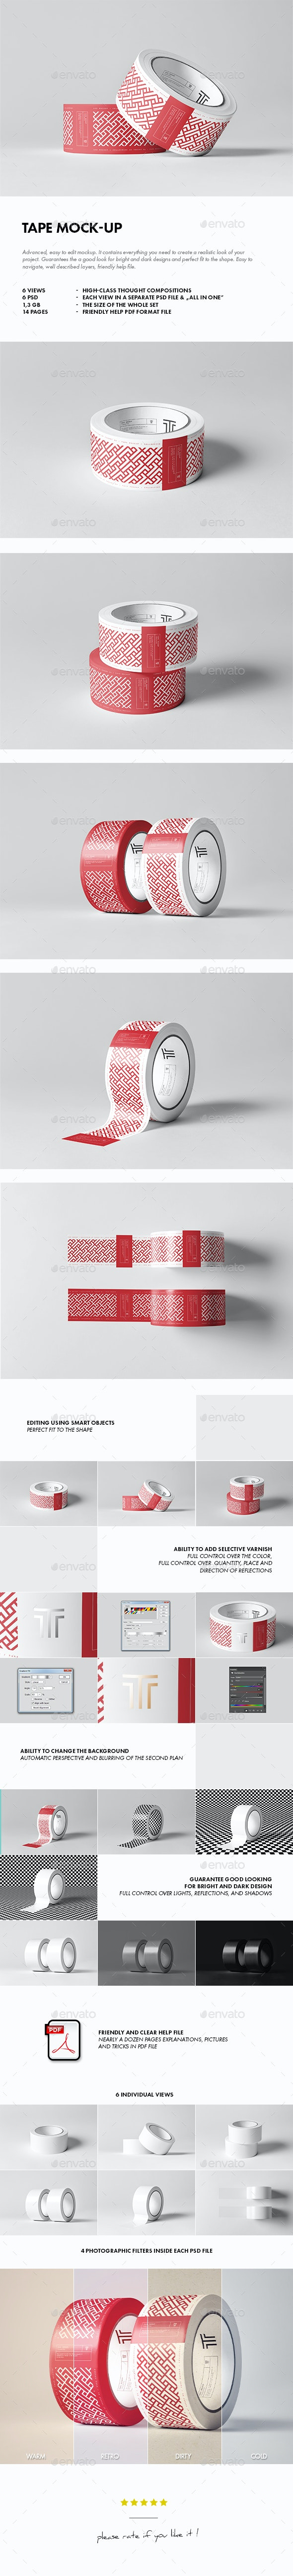 Duct Tape Mock-up - Miscellaneous Product Mock-Ups